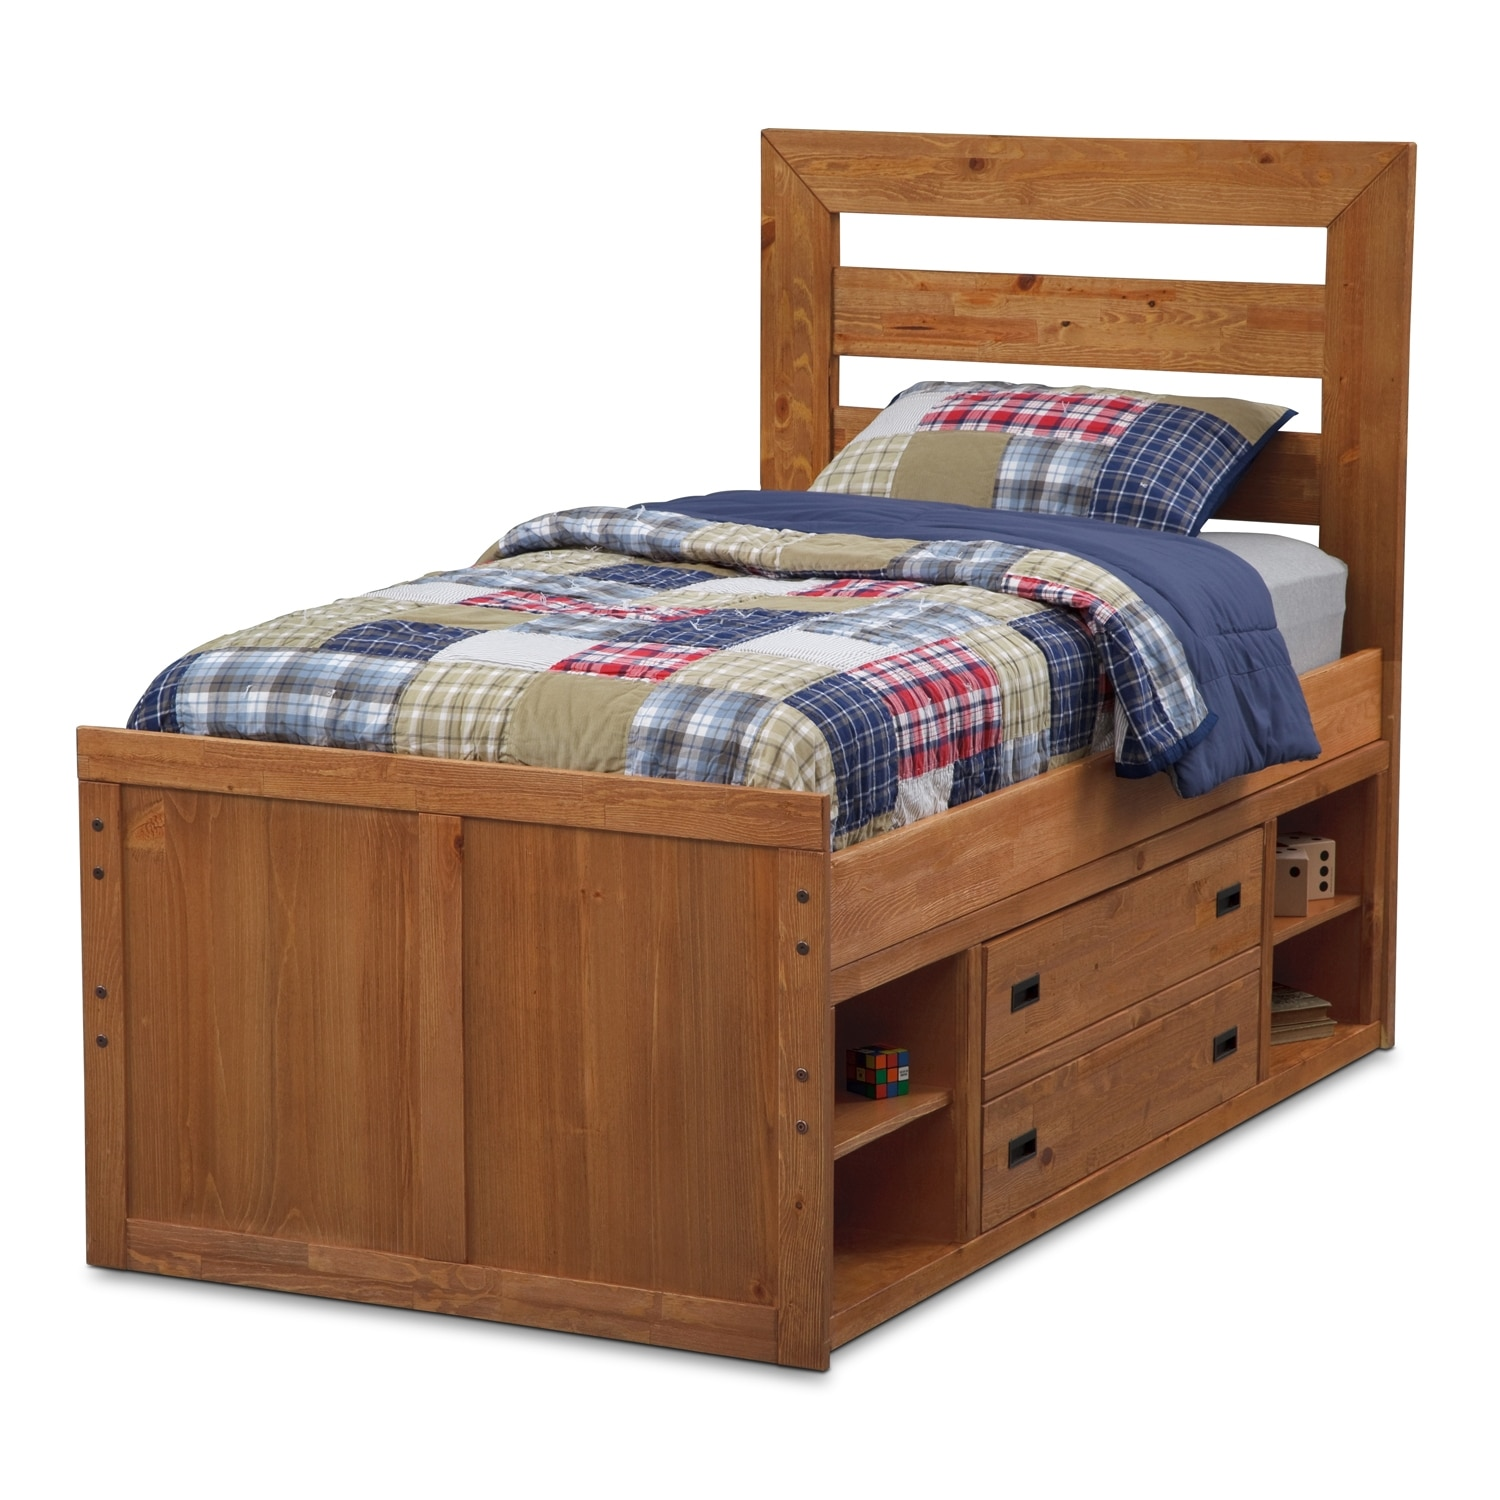 Kids furniture twin bed w captain storage value city furniture